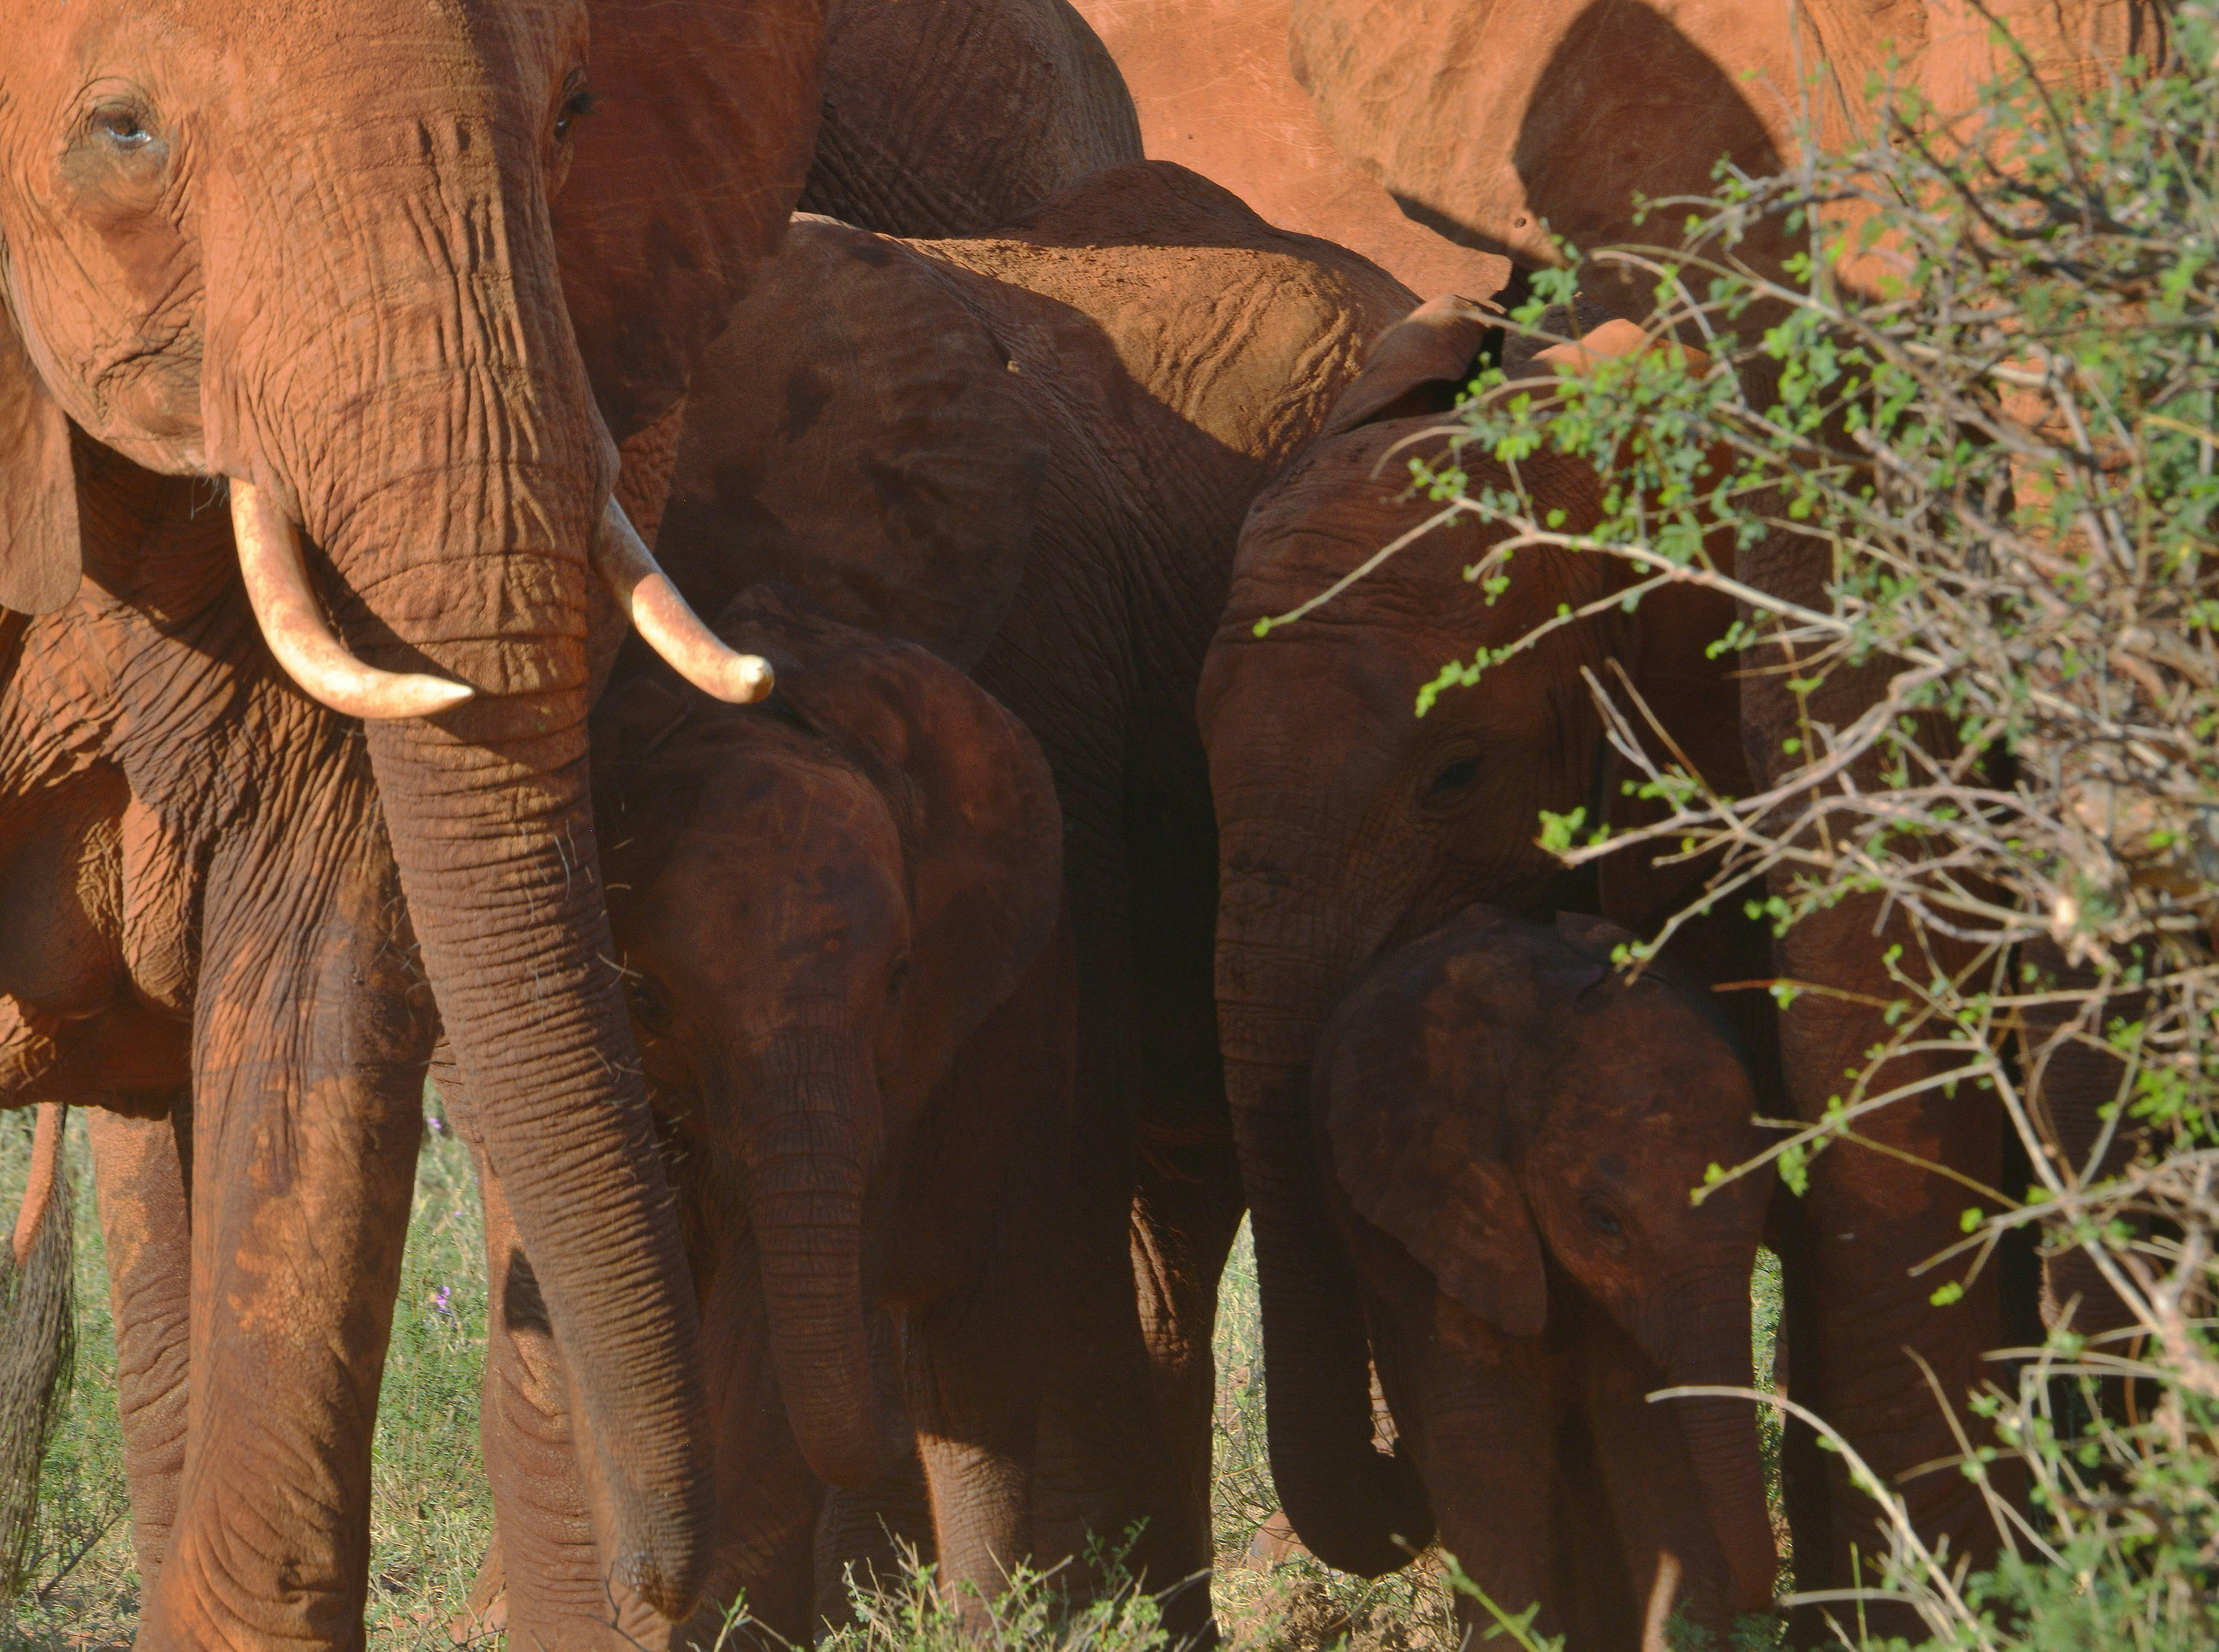 Elephants are pictured on March 15, 2016 at the Tsavo east national park (approximately 337 kilometres south east) of the Kenyan capital, Nairobi.